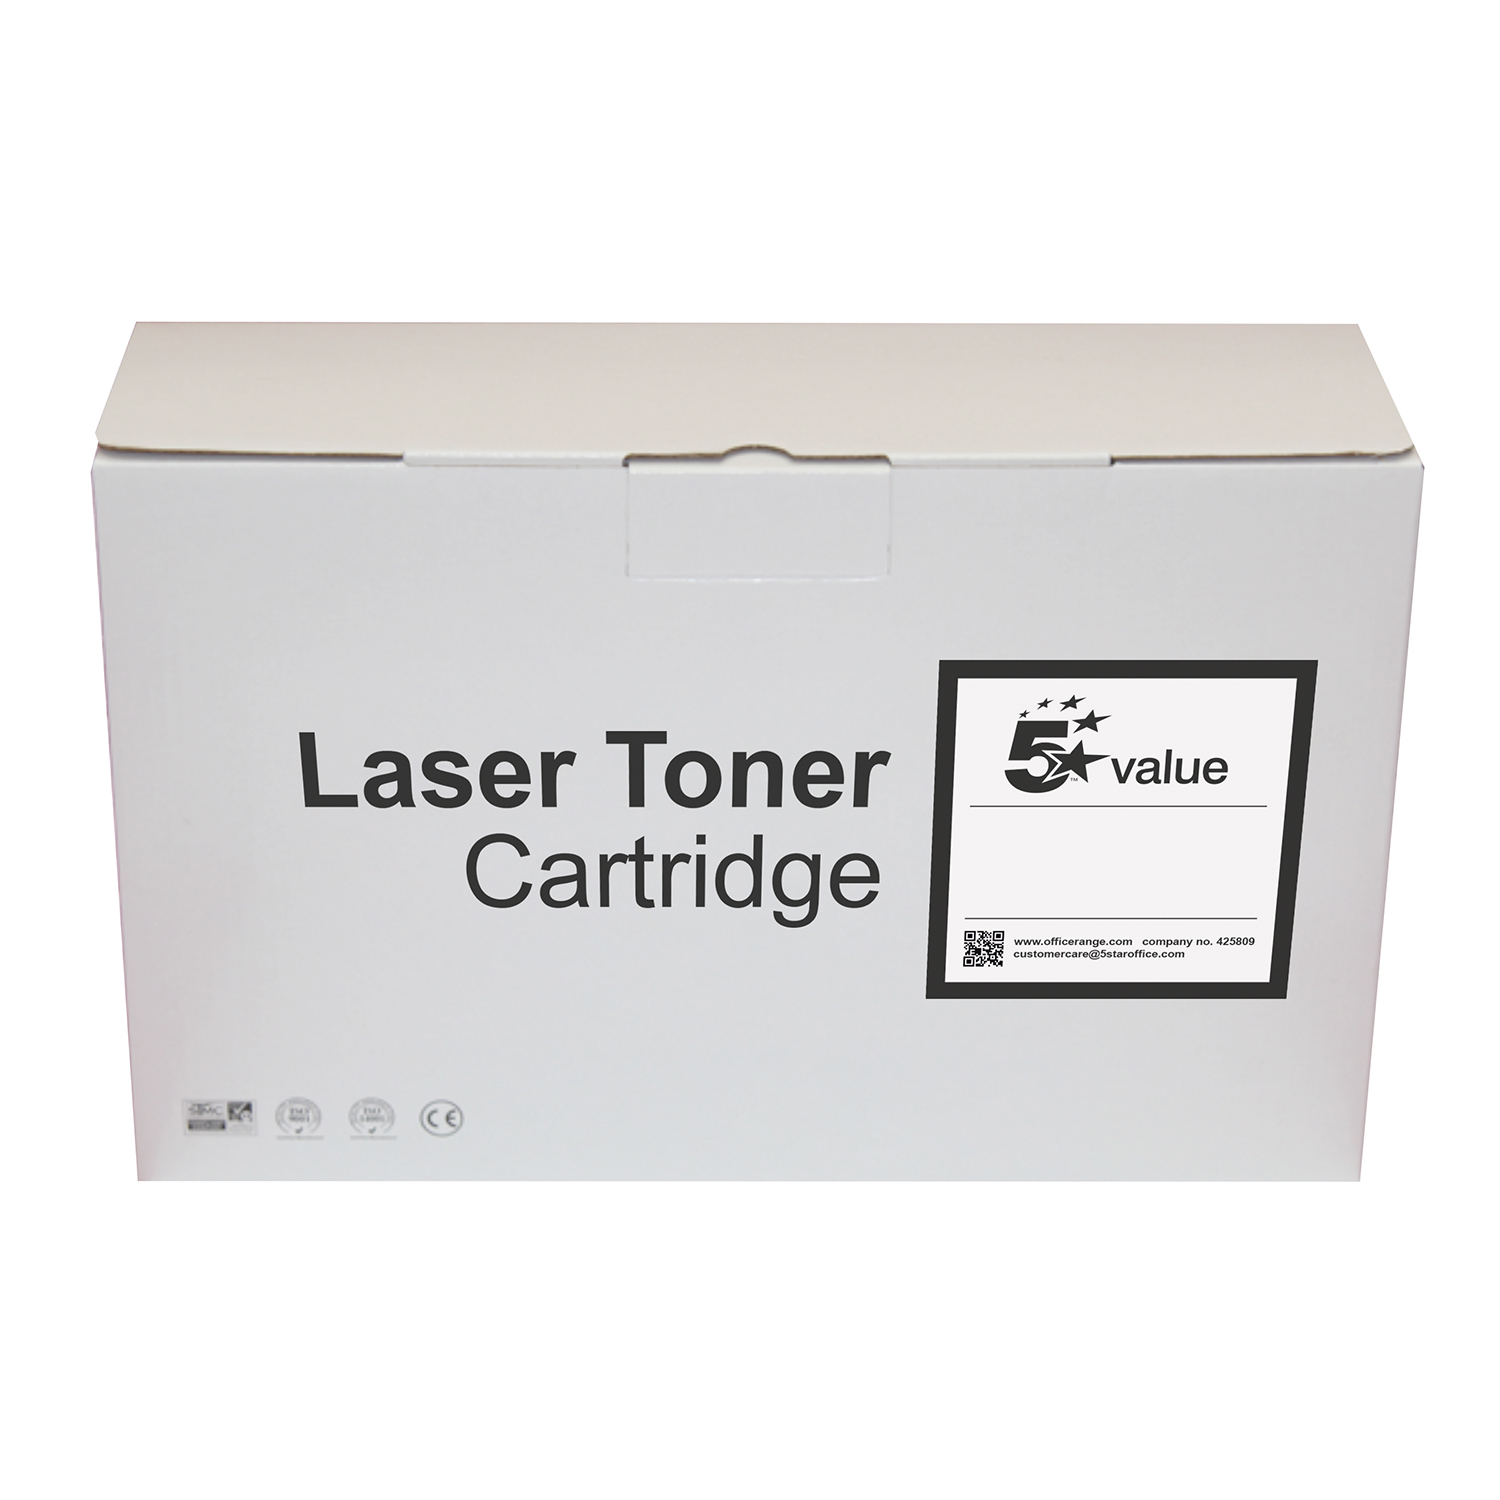 Laser Toner Cartridges 5 Star Value HP 126A Toner Cartridge Black CE310A